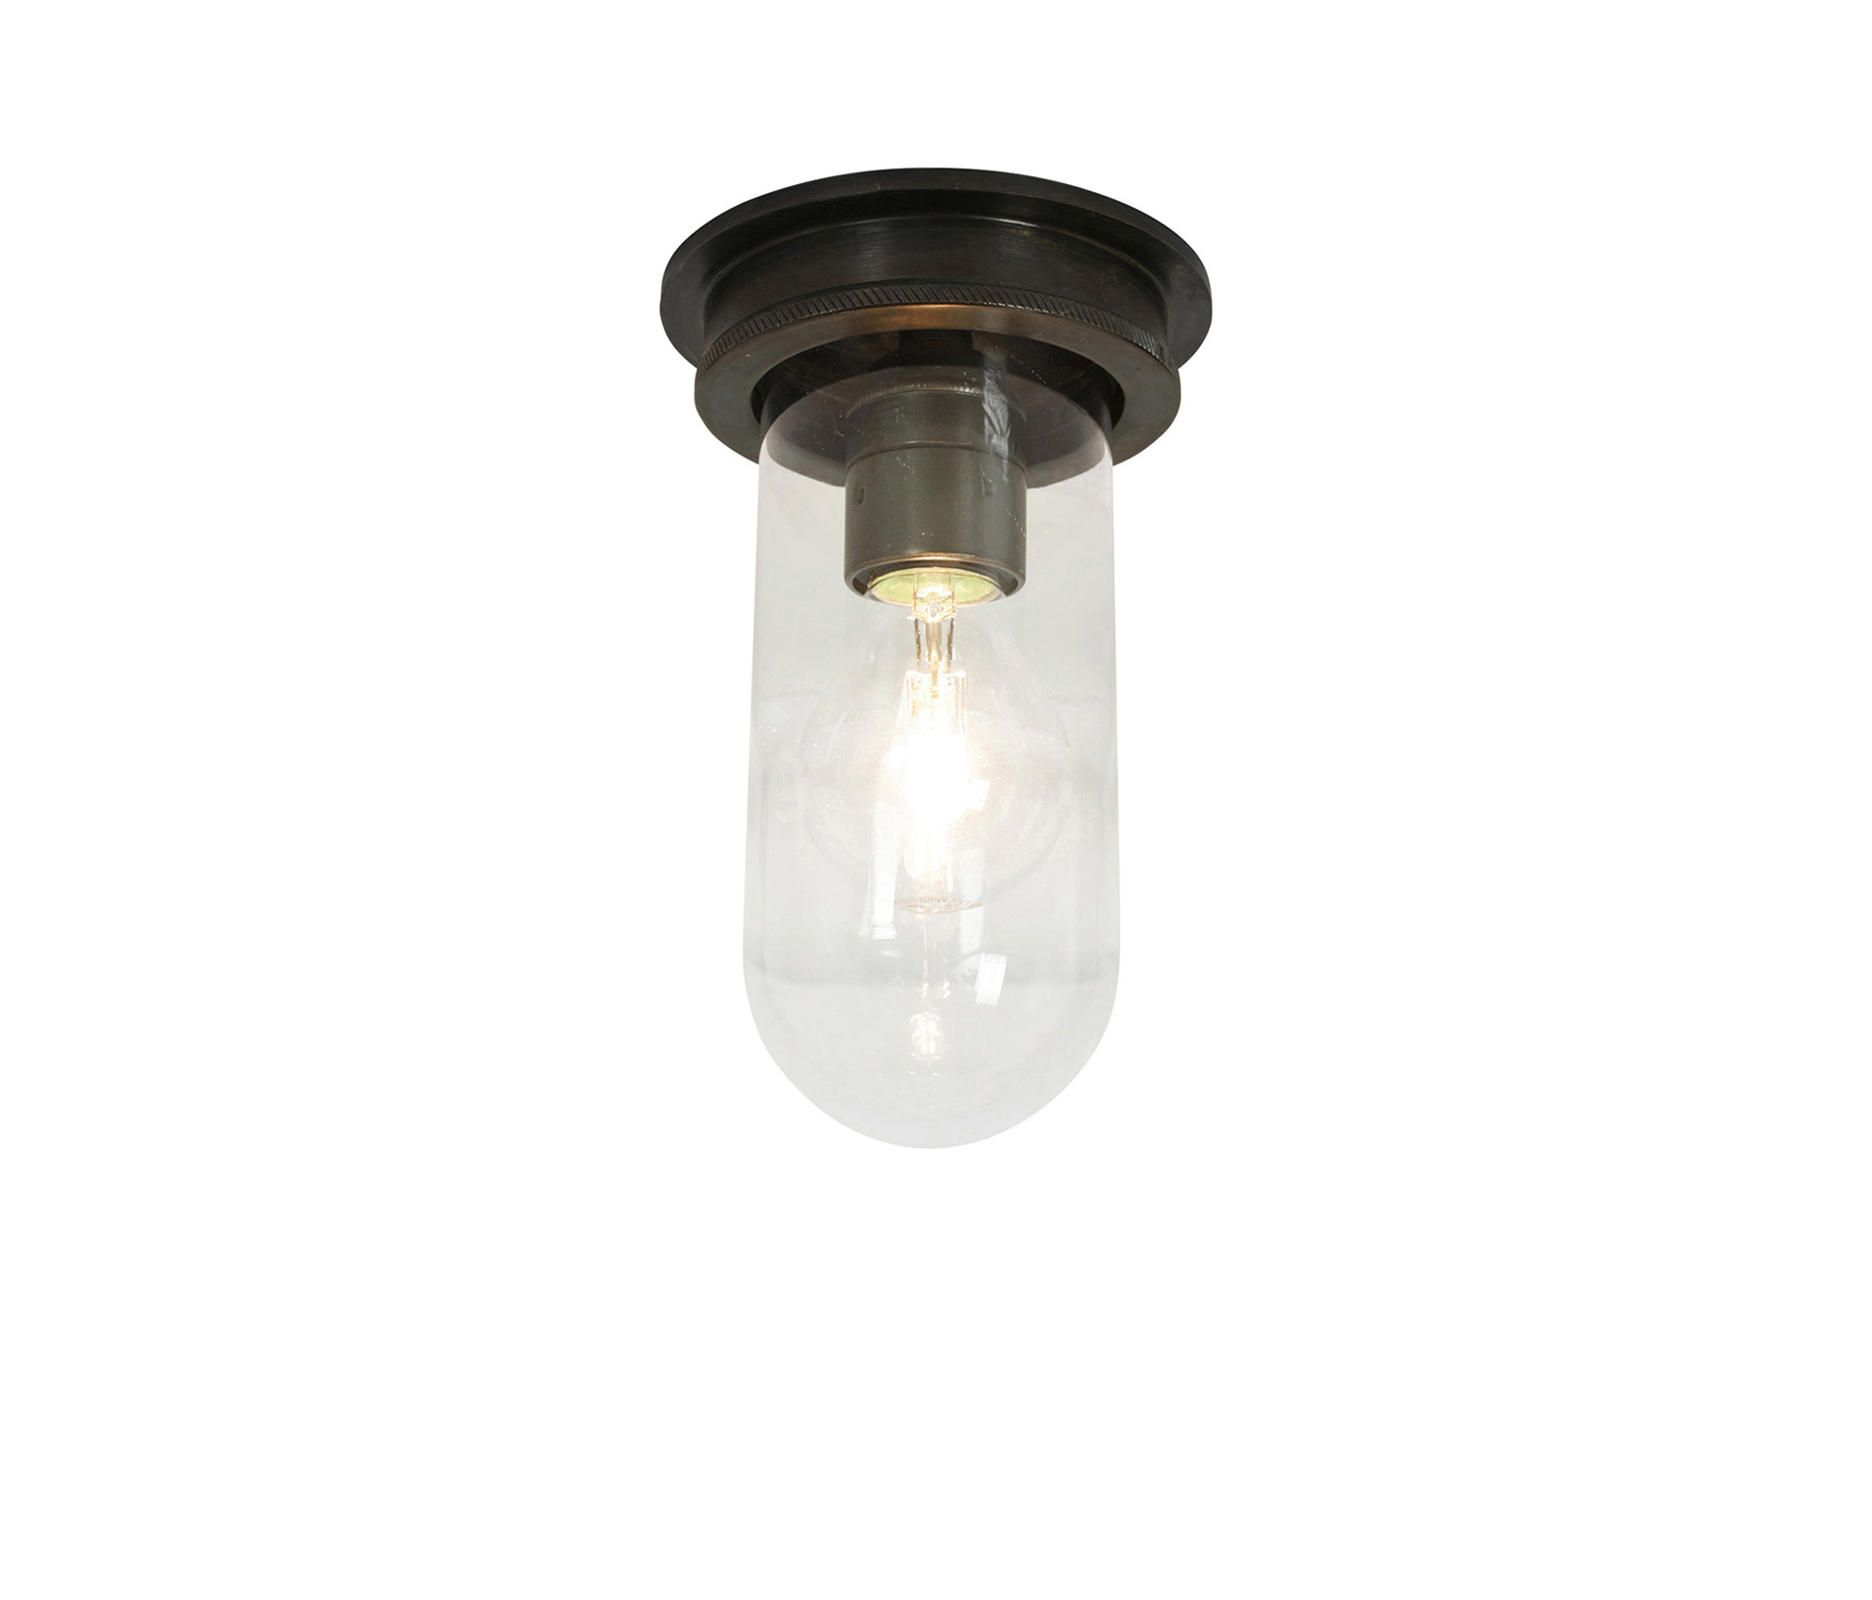 7202 SHIP S PANIONWAY LIGHT WEATHERED BRASS CLEAR GLASS